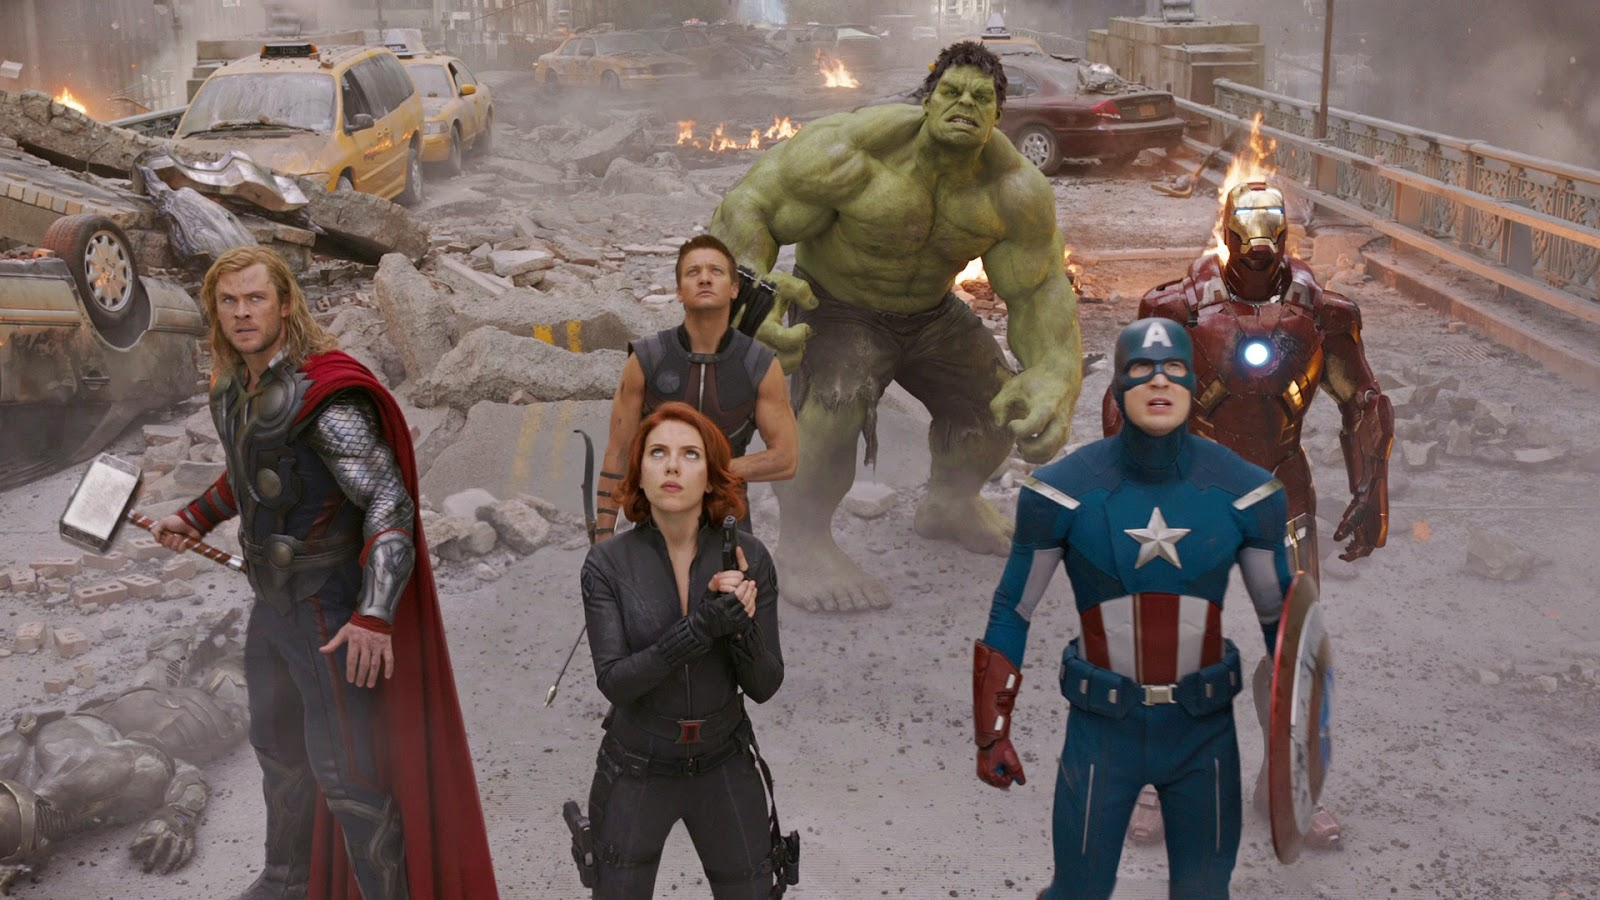 Summer Movie Preview 2015: Avengers: Age of Ultron, Inside Out, Ant-Man, Mission Impossible and Fantastic Four Among Most Anticipated Films